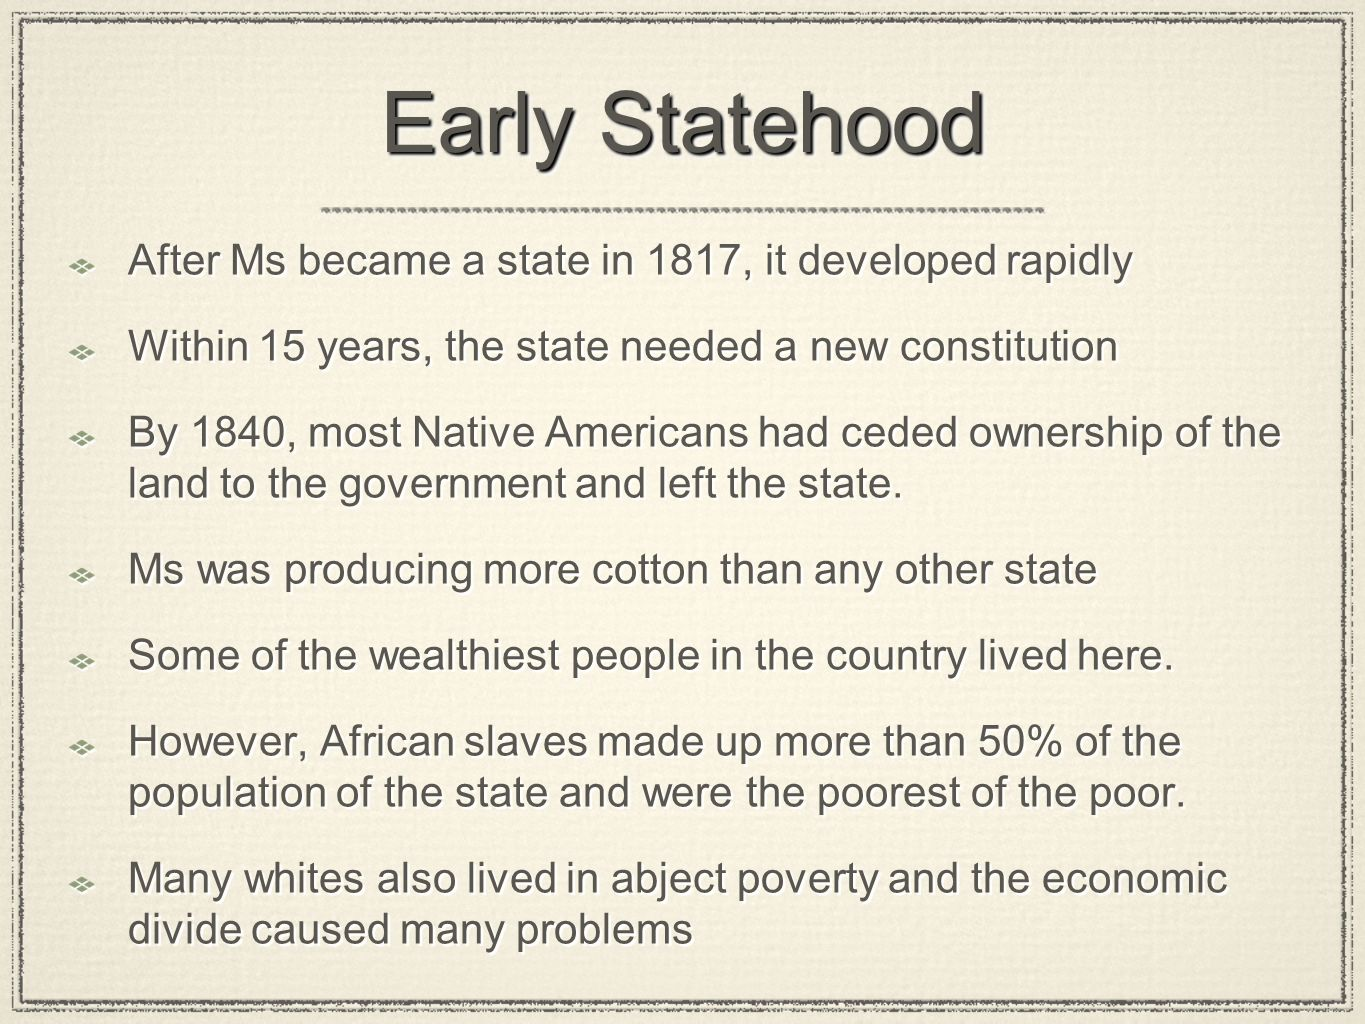 Early Statehood After Ms became a state in 1817, it developed rapidly